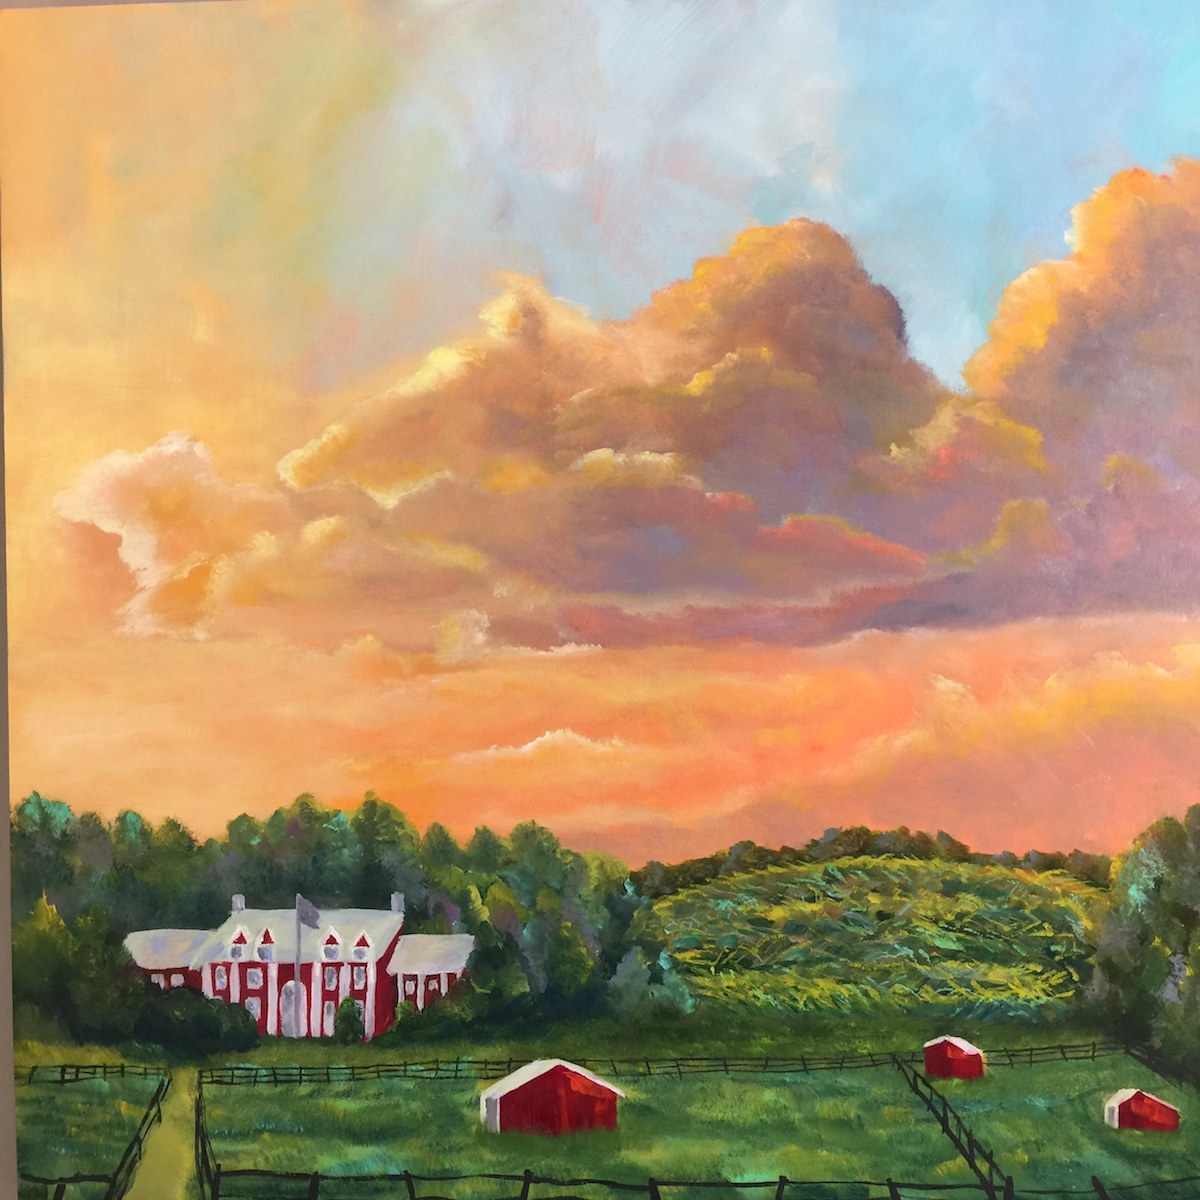 Black Star Farms - Painting by Stephanie Schlatter